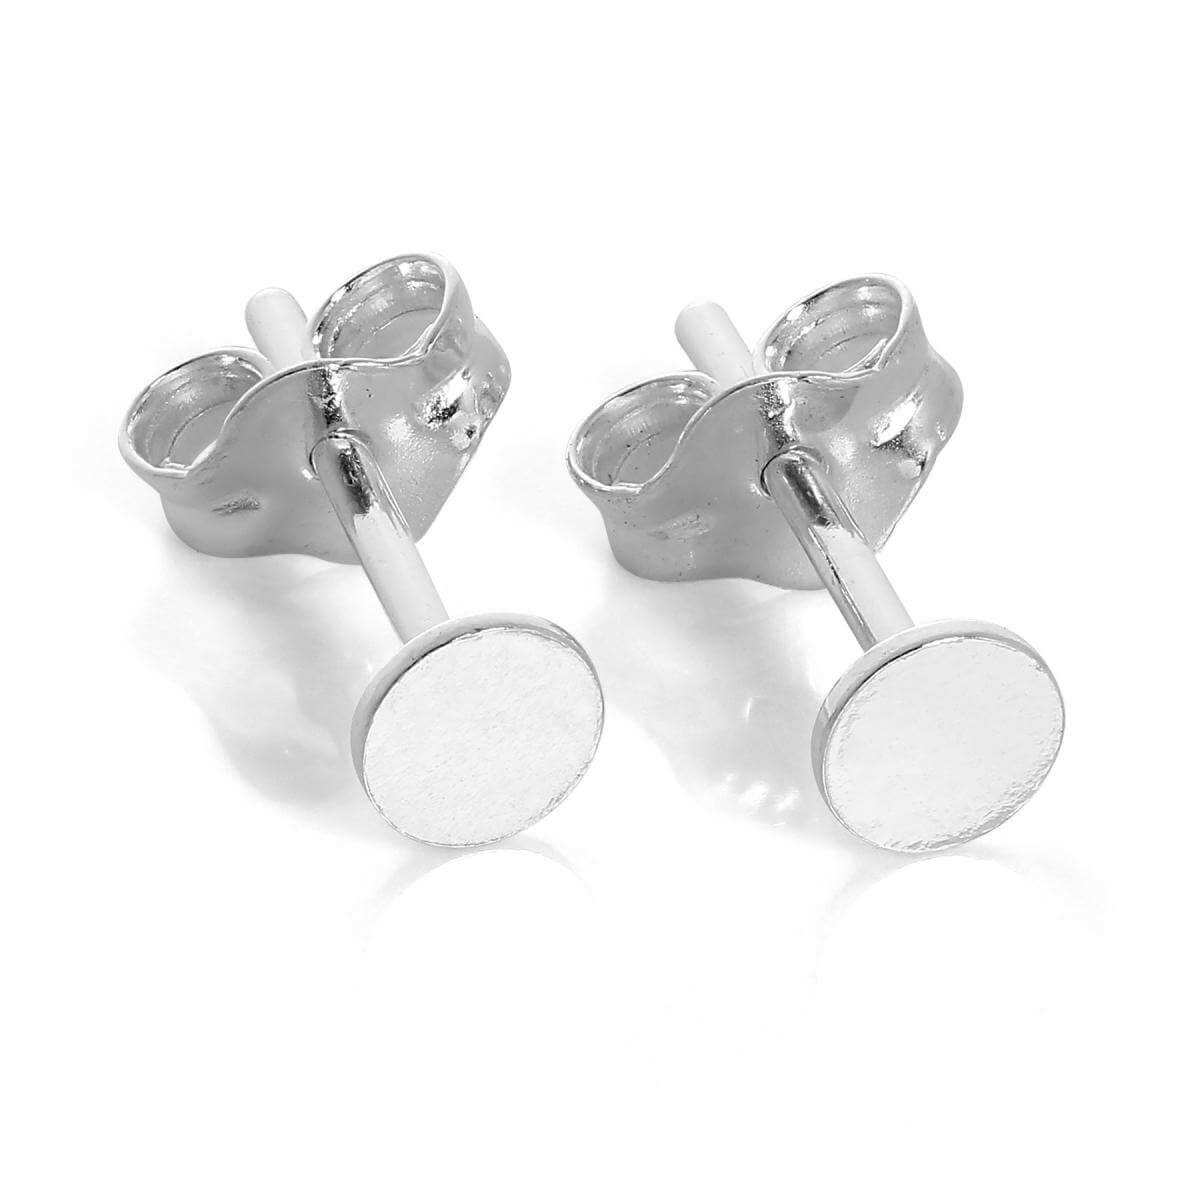 com kern stud earrings johnlewis dyrberg john pdp gold main rsp online at flat disc buydyrberg lewis